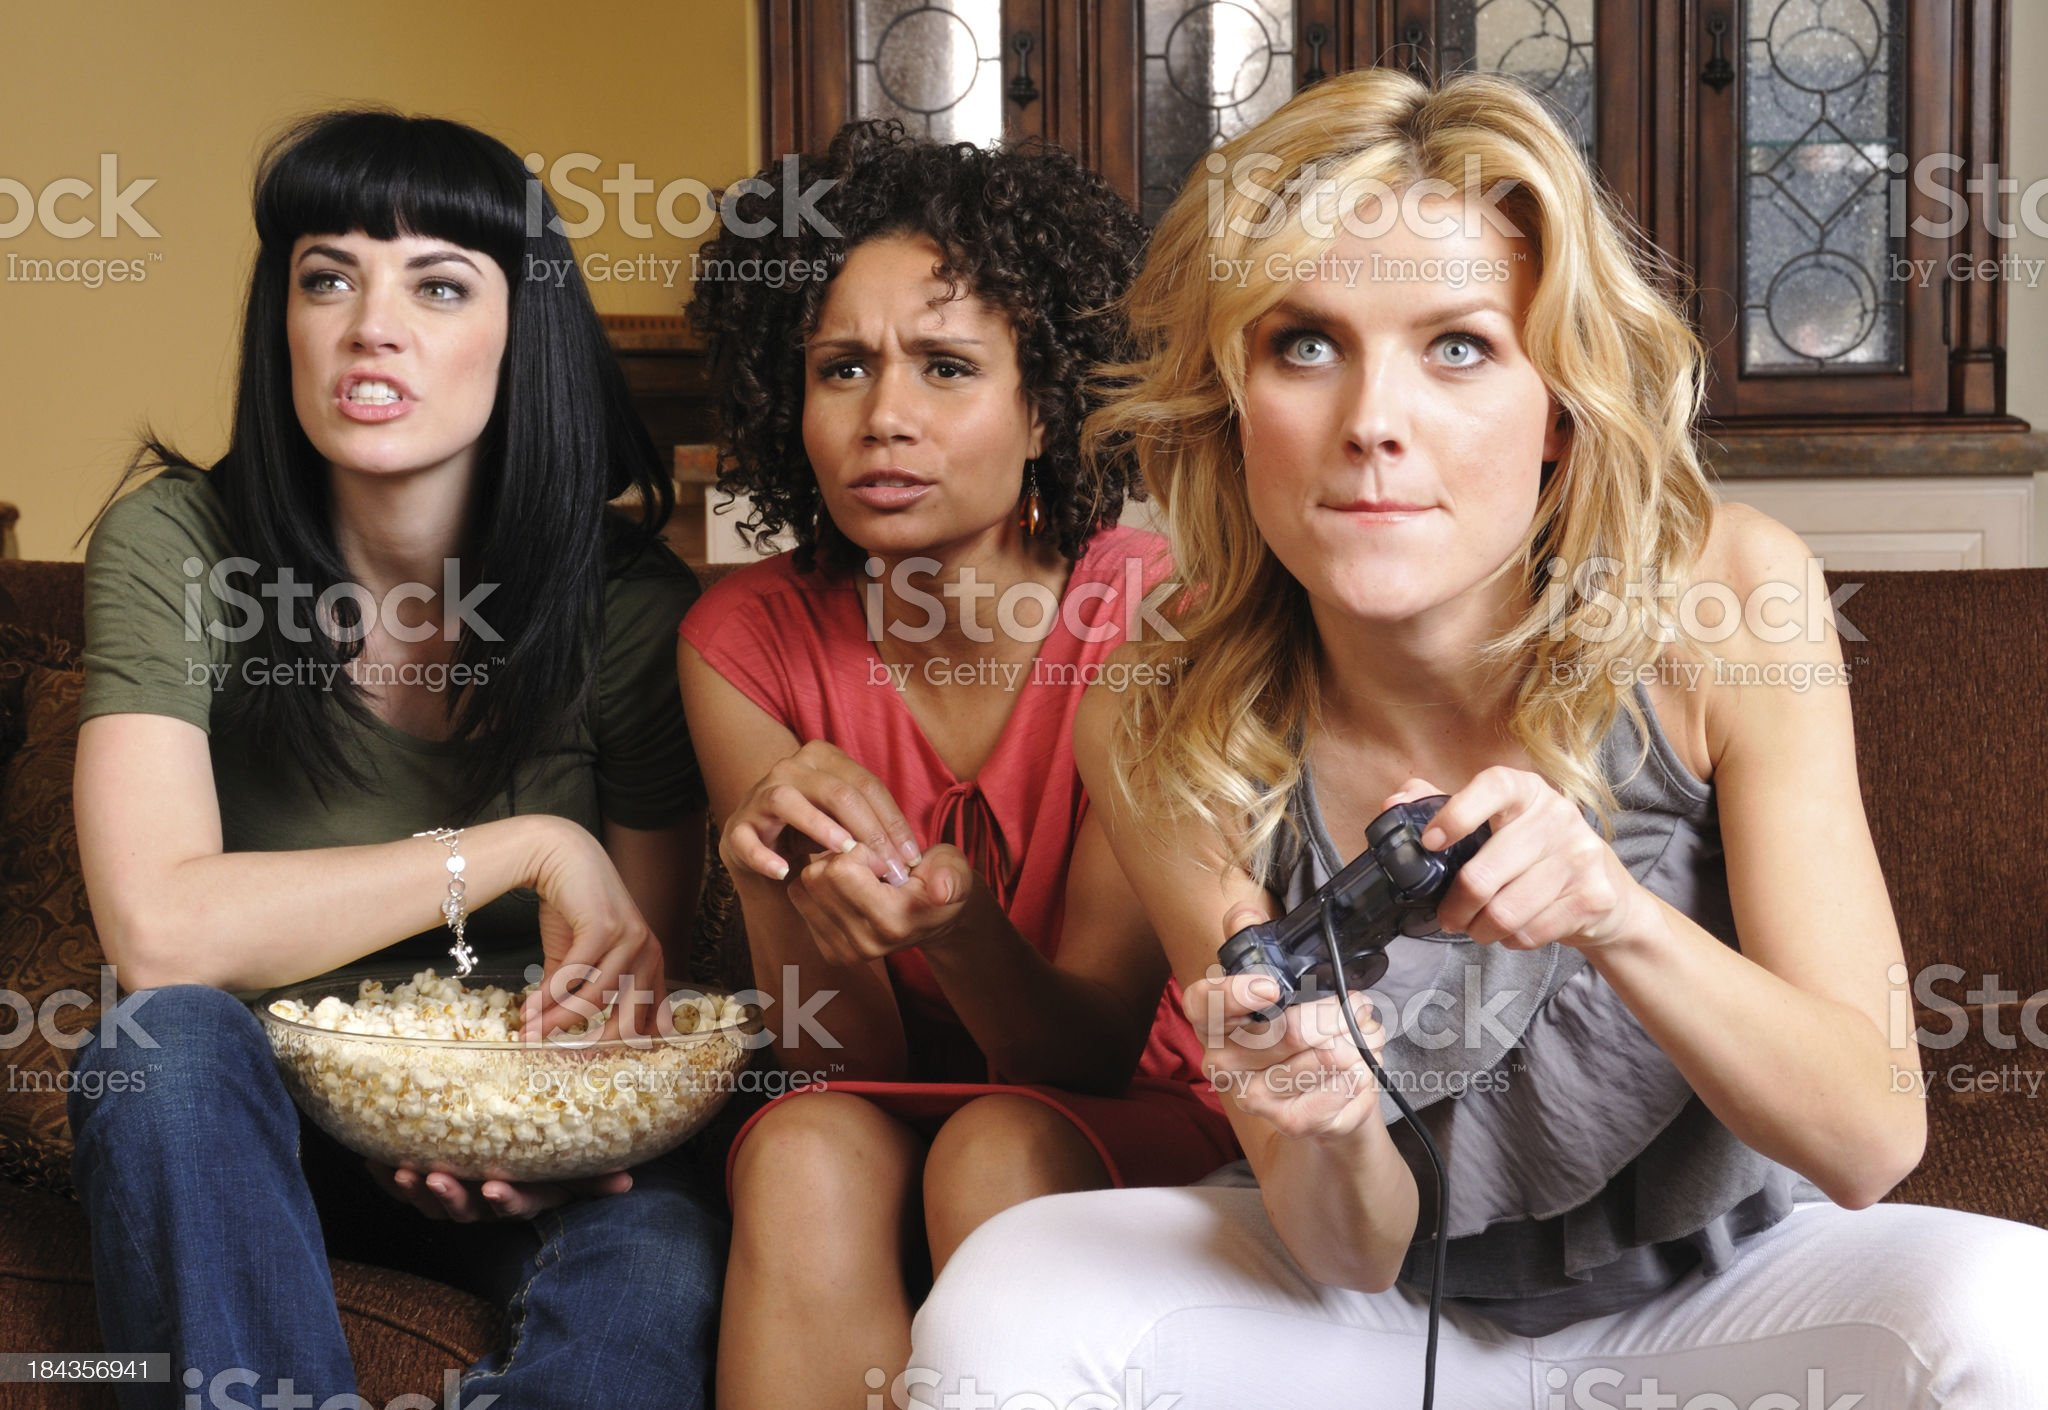 Female Video Gamers royalty-free stock photo